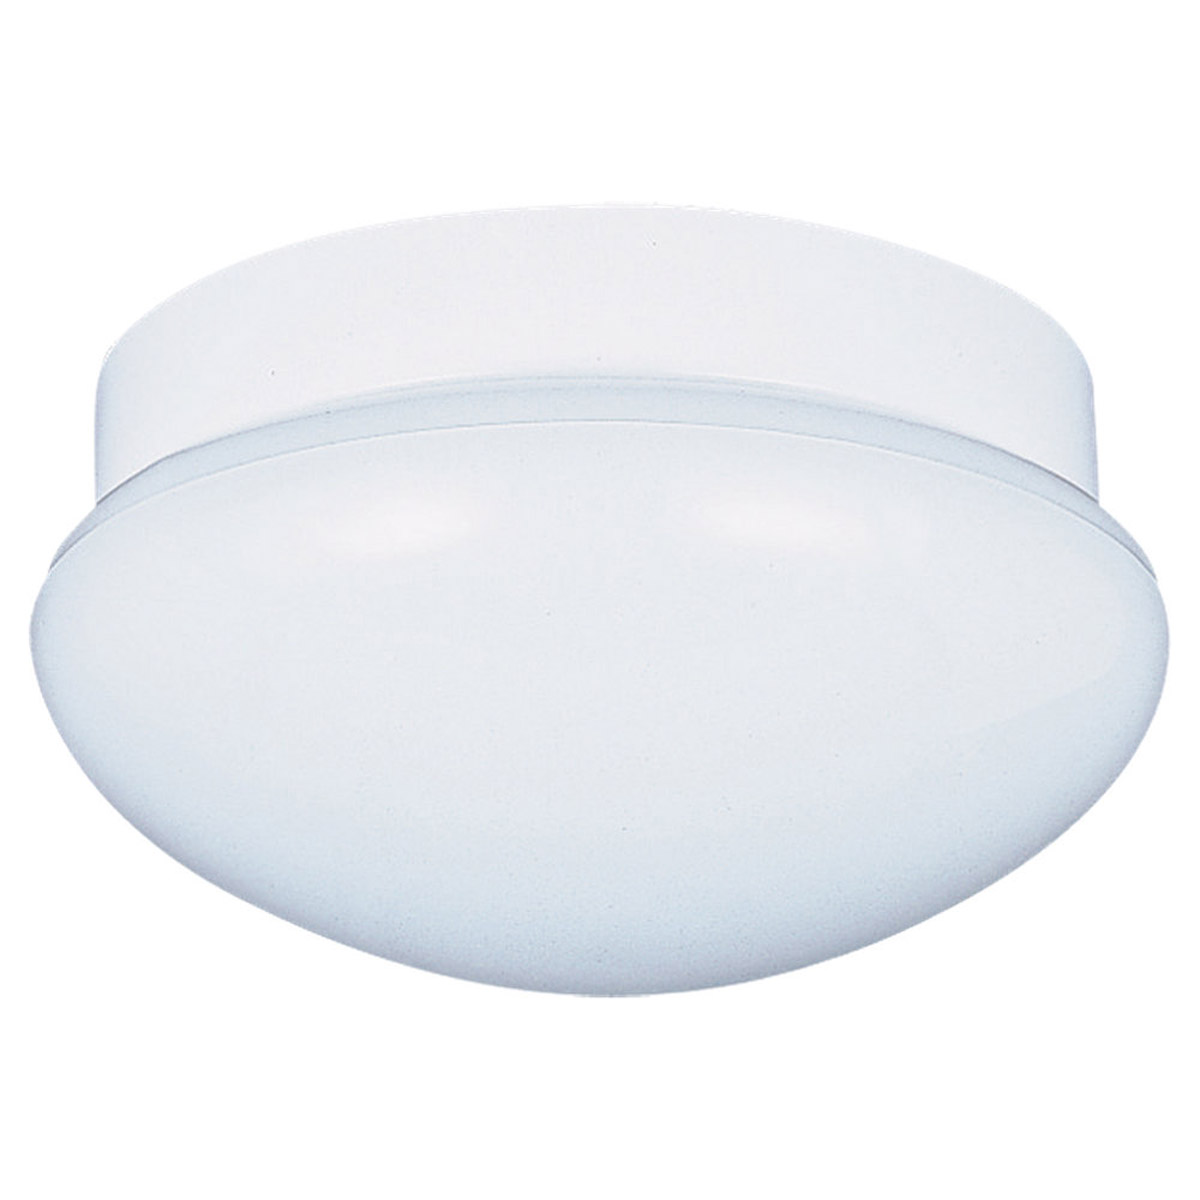 Sea Gull Lighting Flush Mount 2 Light Flush Mount in White 7639-15